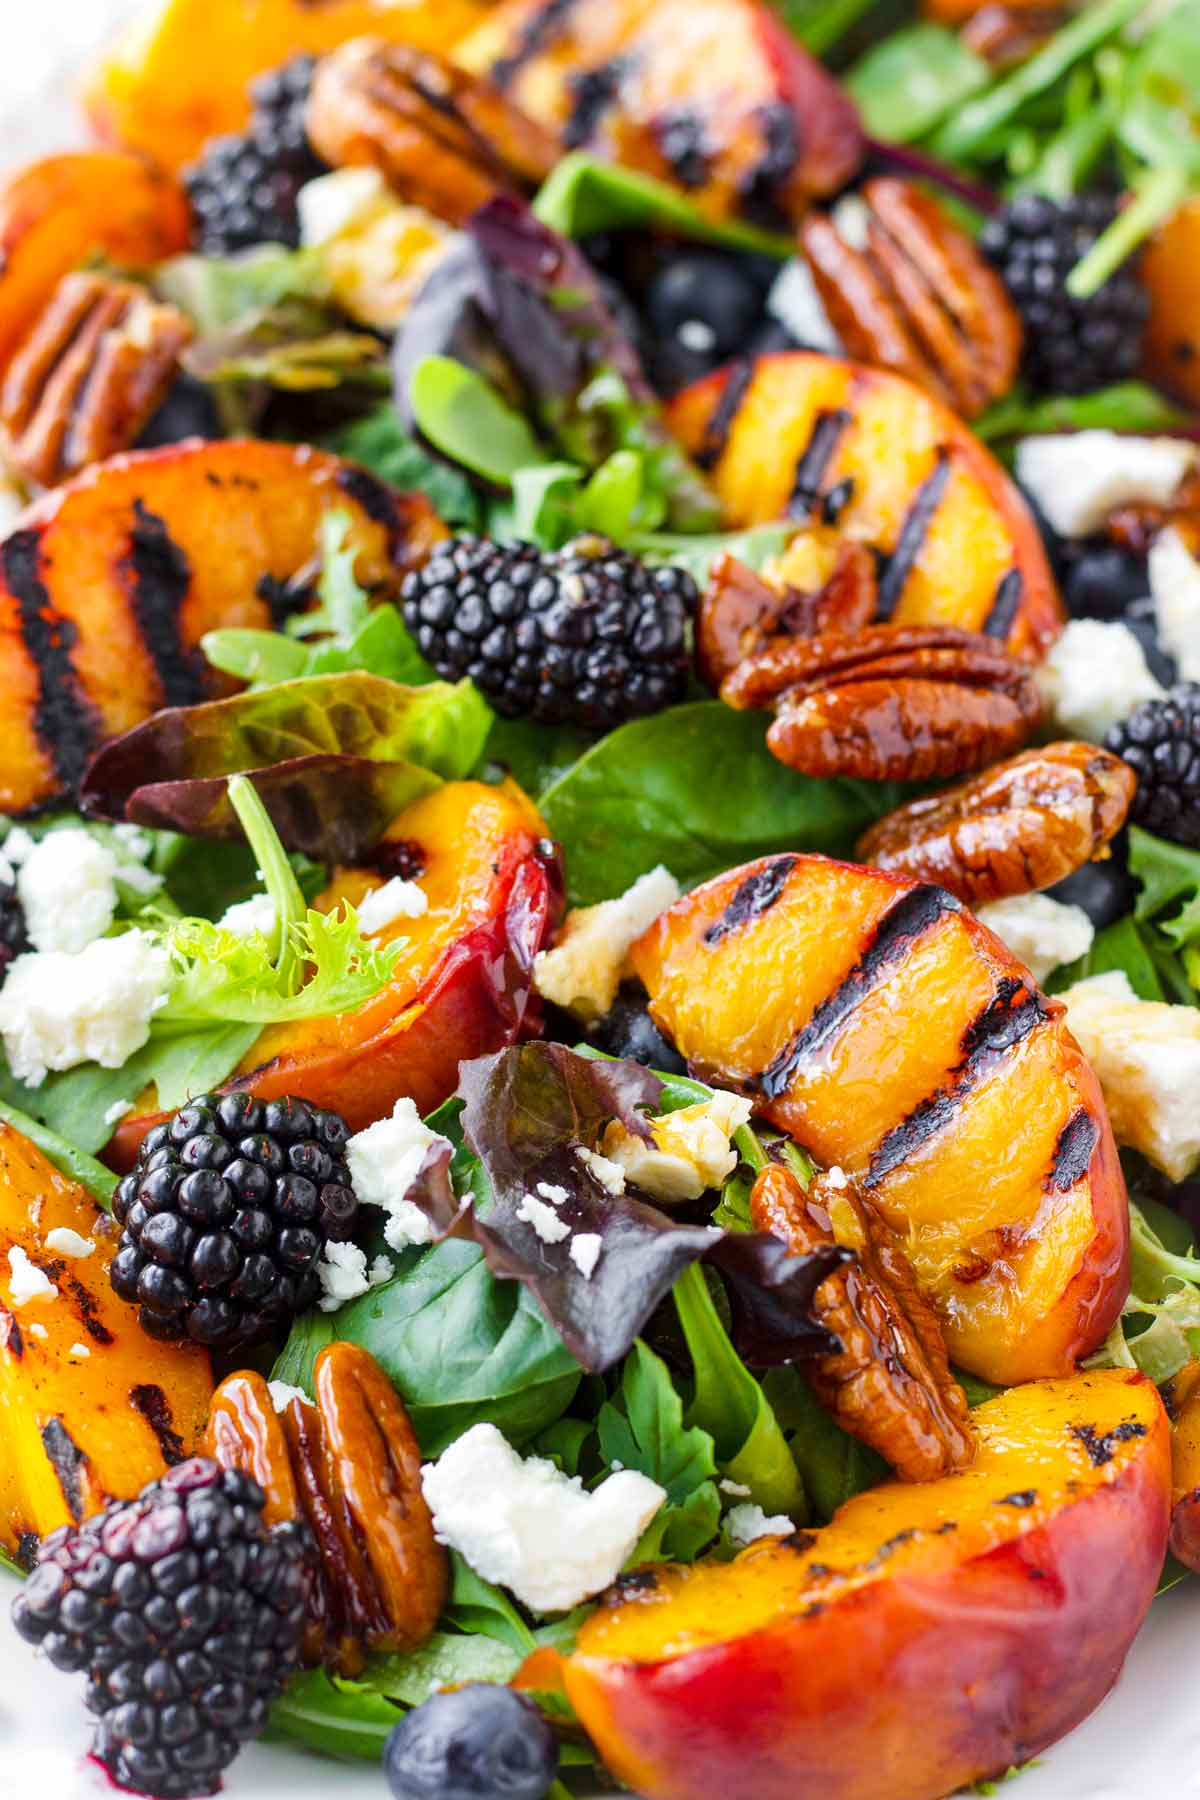 grilled peach salad with blackberries and blueberries